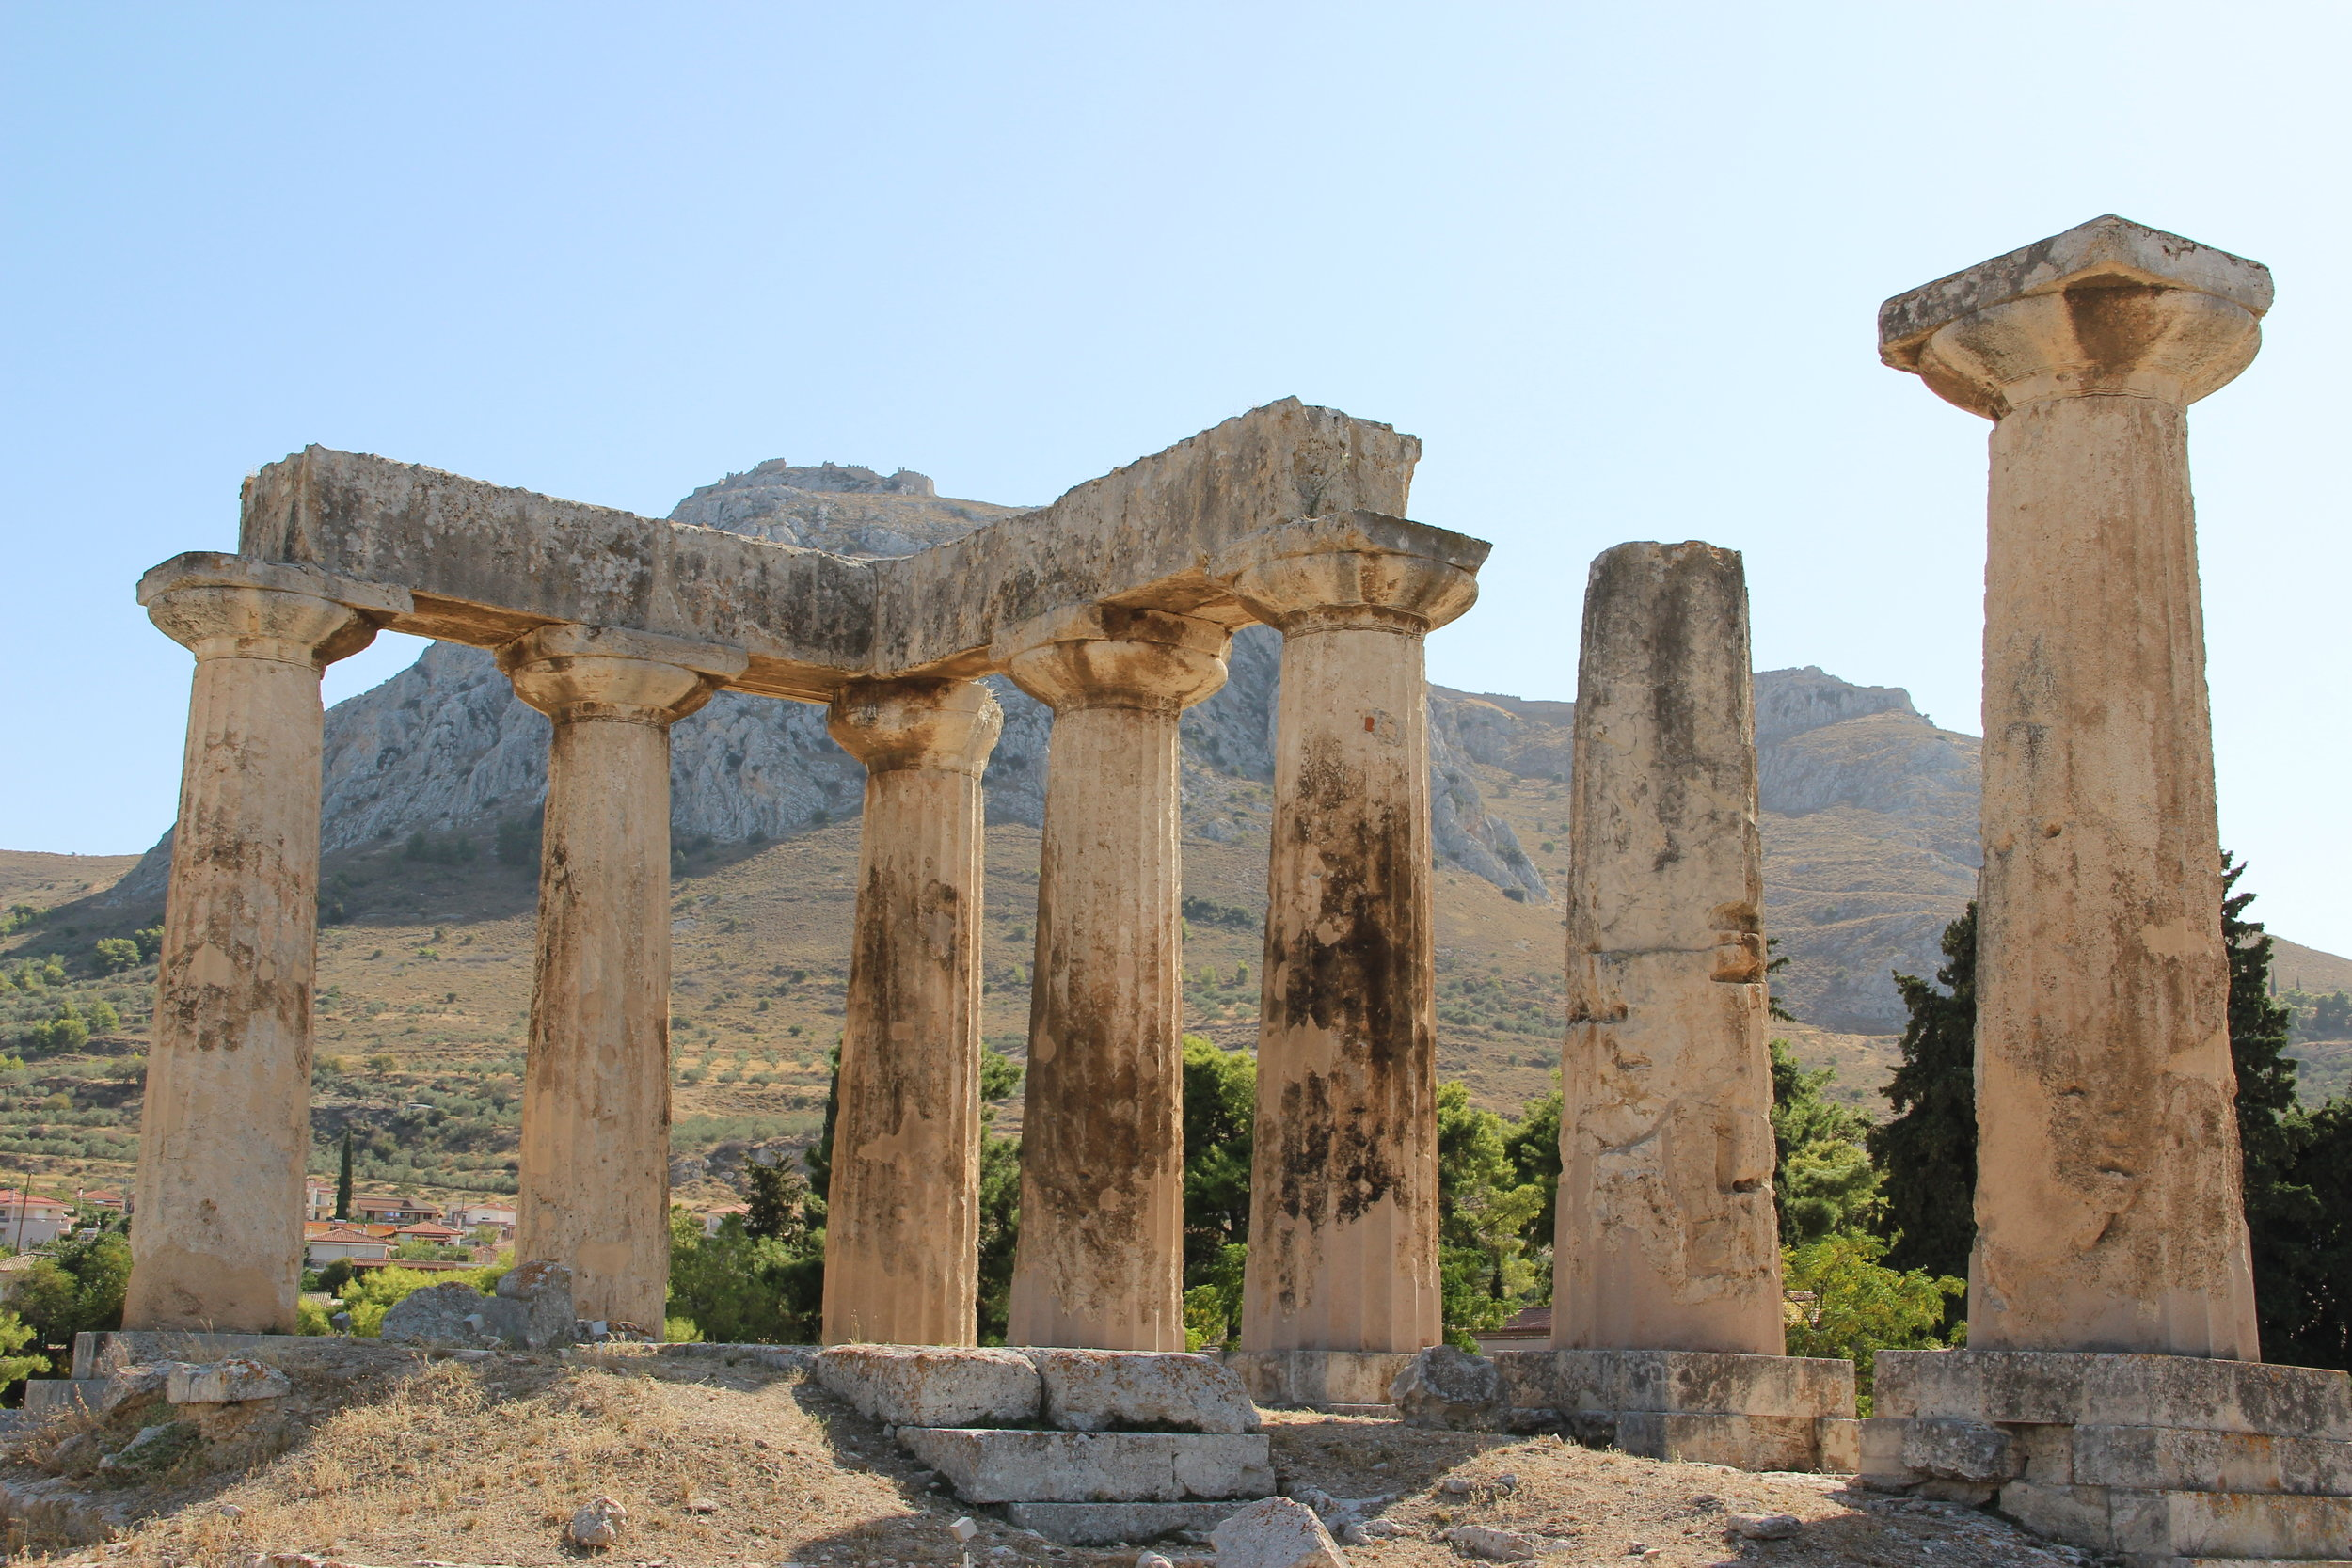 The ancient Greek temple of Athena in the archeological site of Corinth, below Acrocorinth